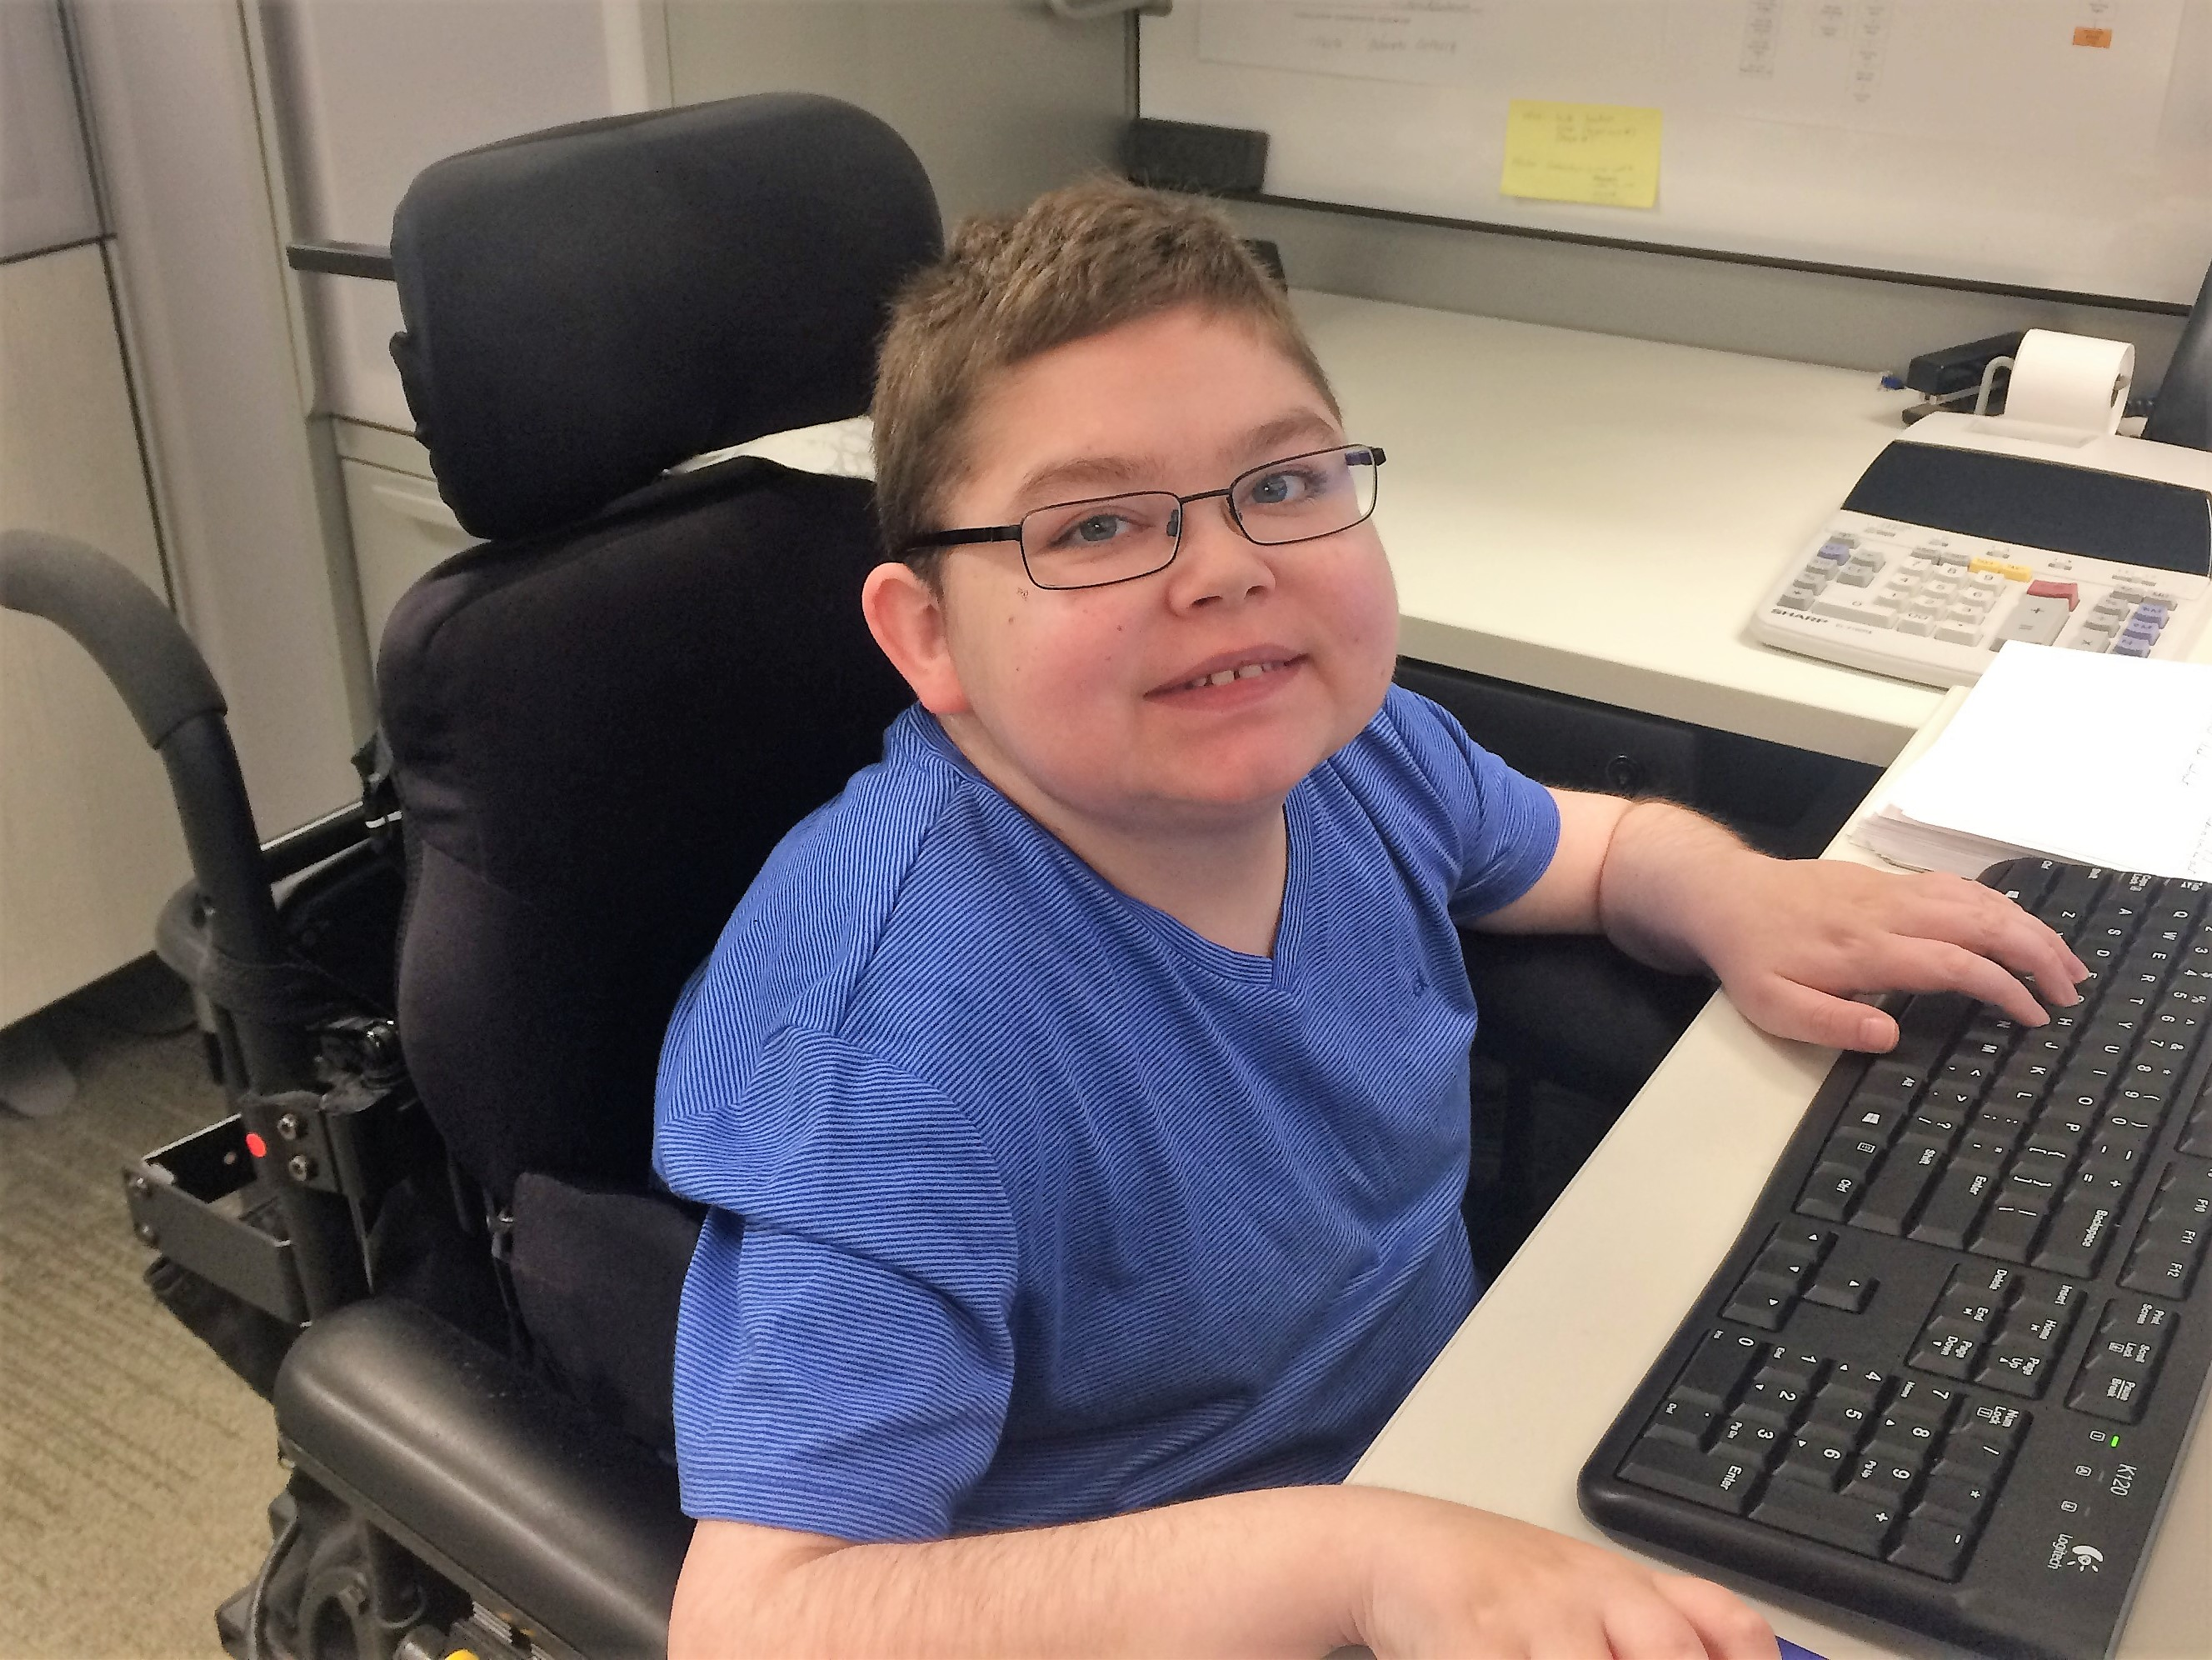 Duchenne Muscular Dystrophy Quotes Families Duchenne Muscular Dystrophy Jesse 39s Journey